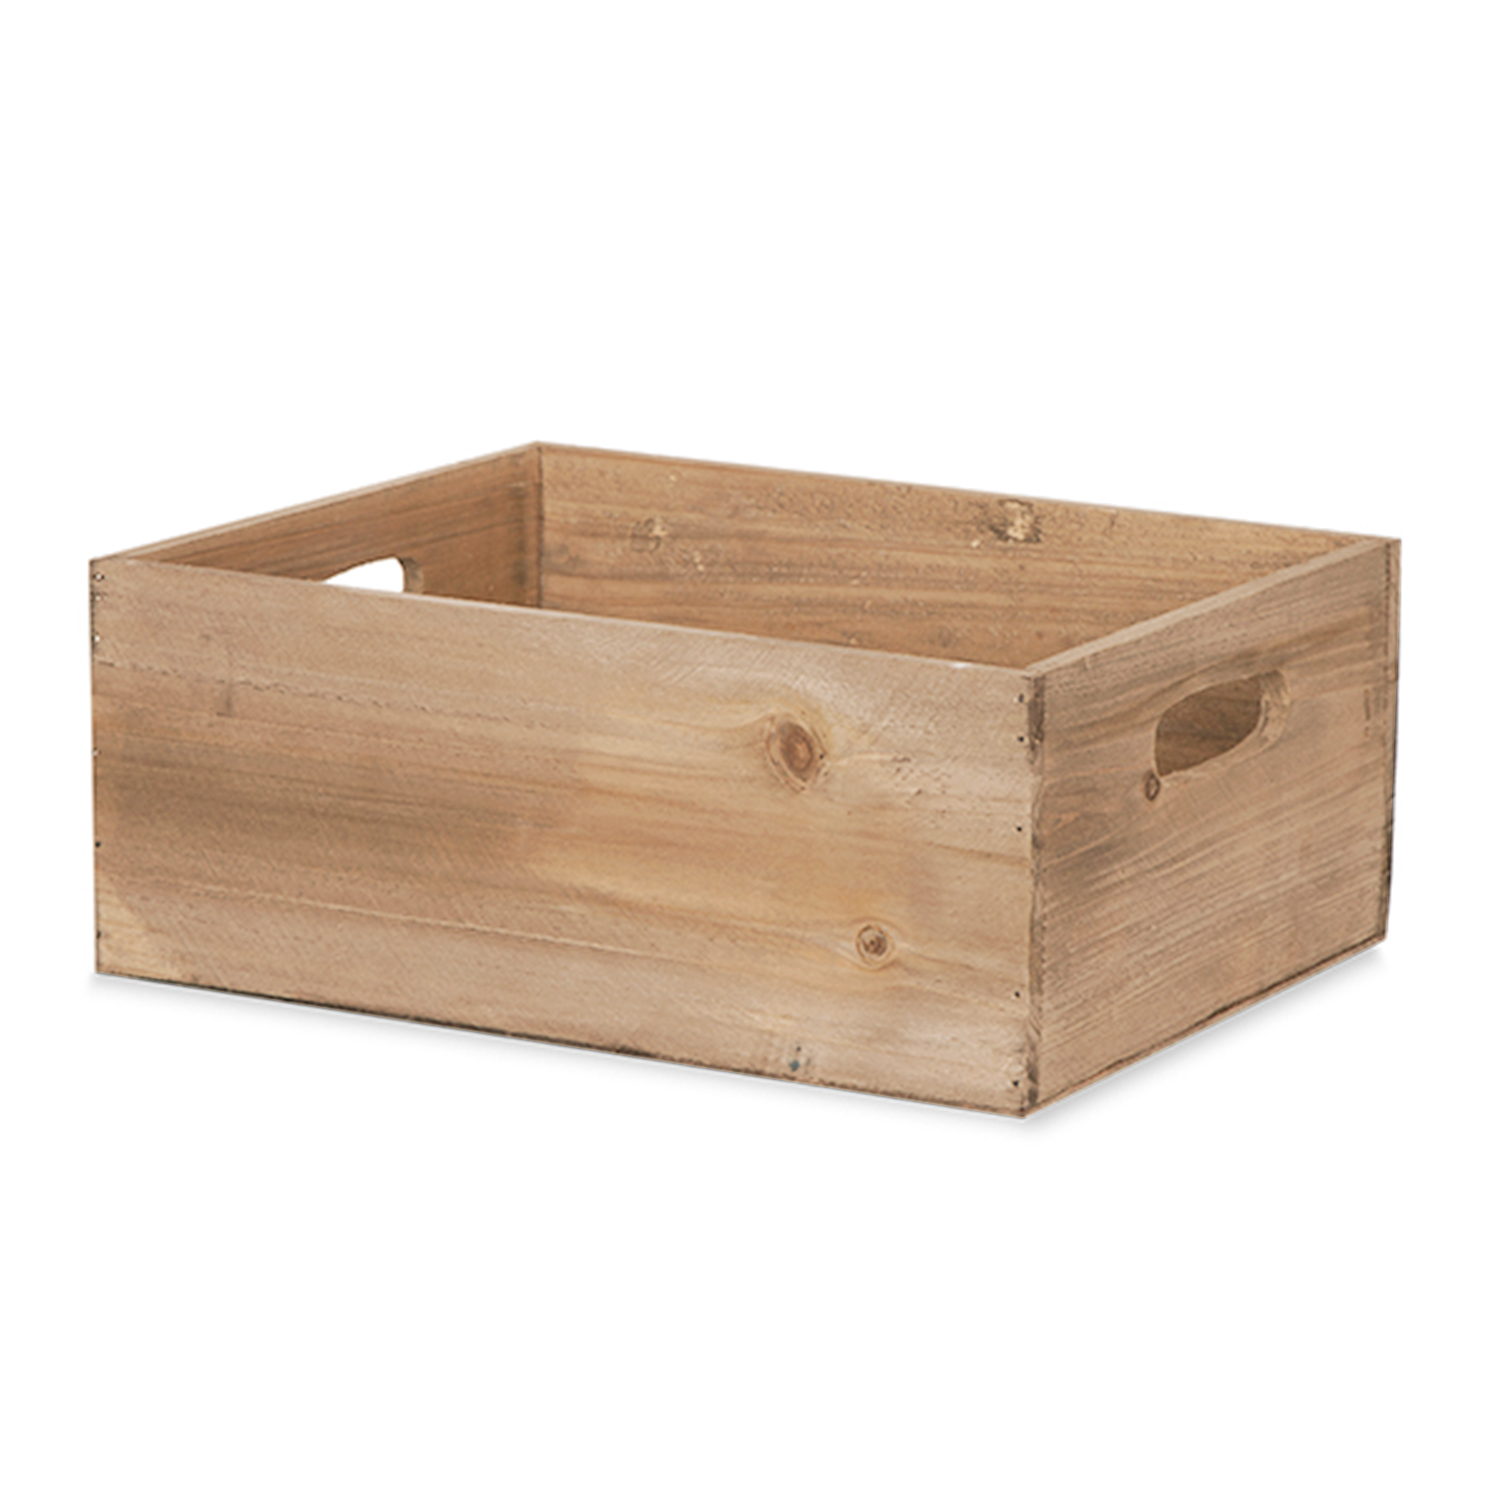 Rect Wood Crate with Cutout Handles -  Brown 11in